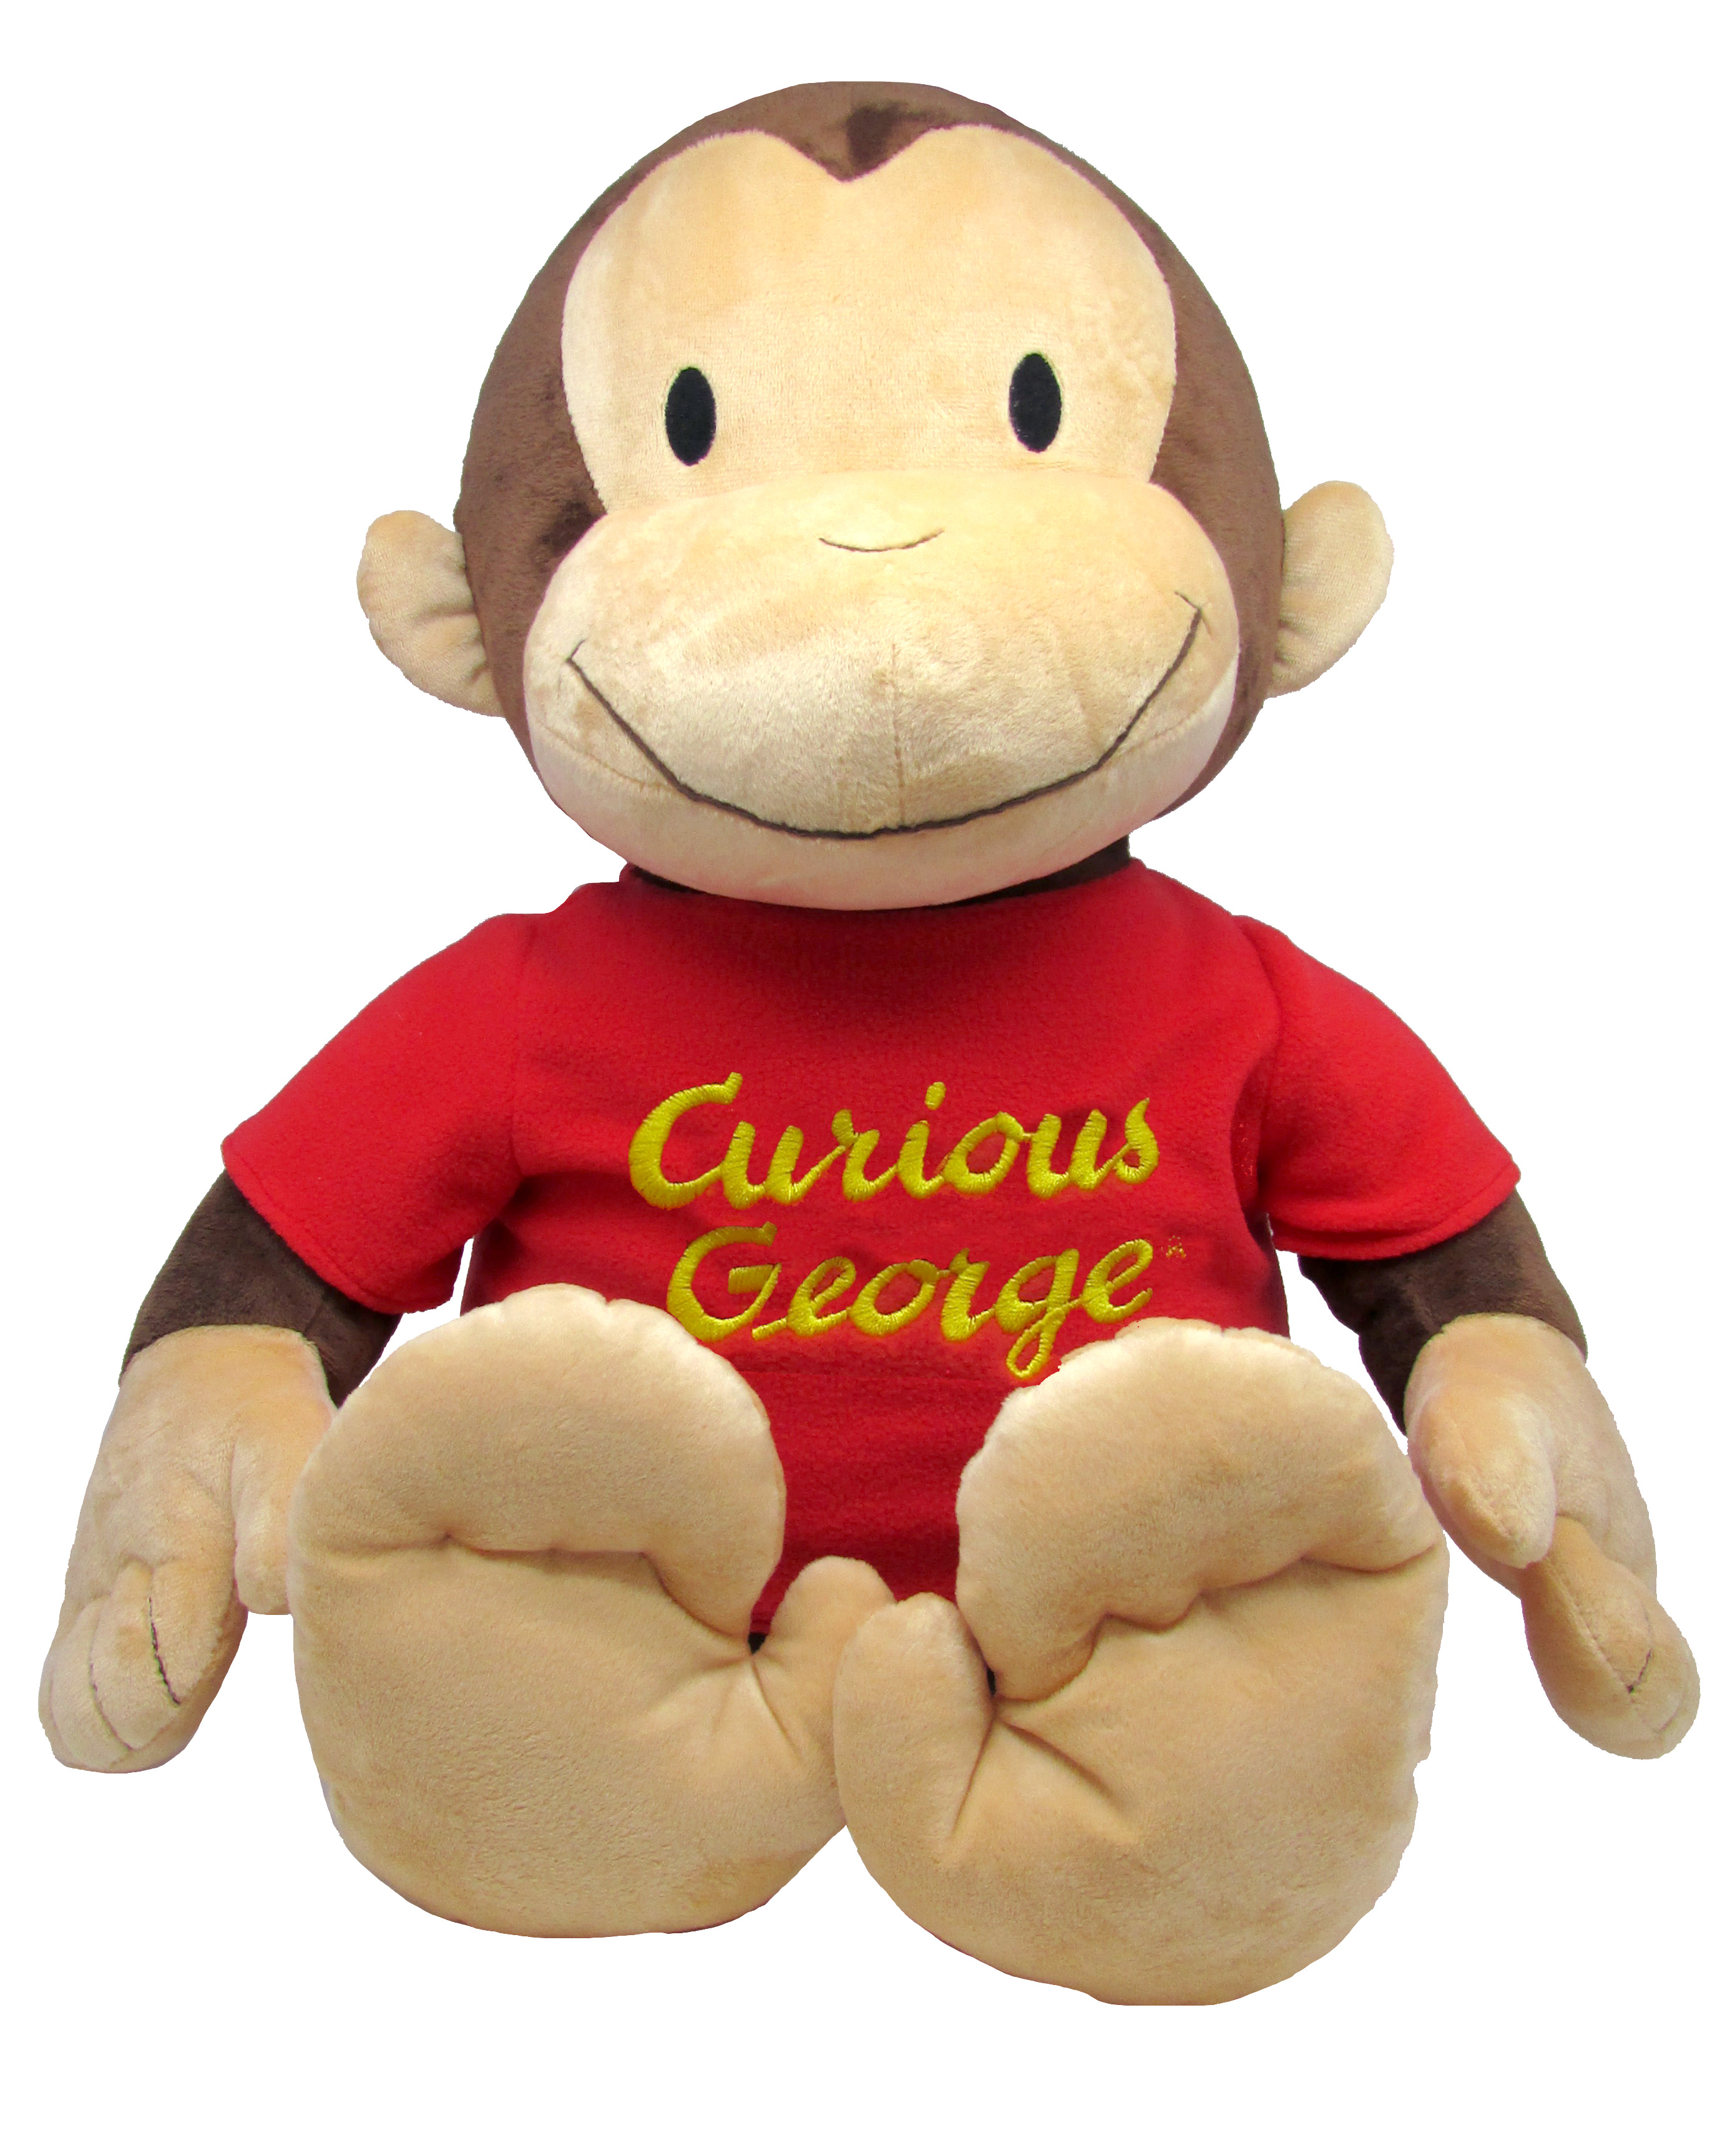 "Curious George Jumbo 26"" Plush with Sound by Kids Preferred"